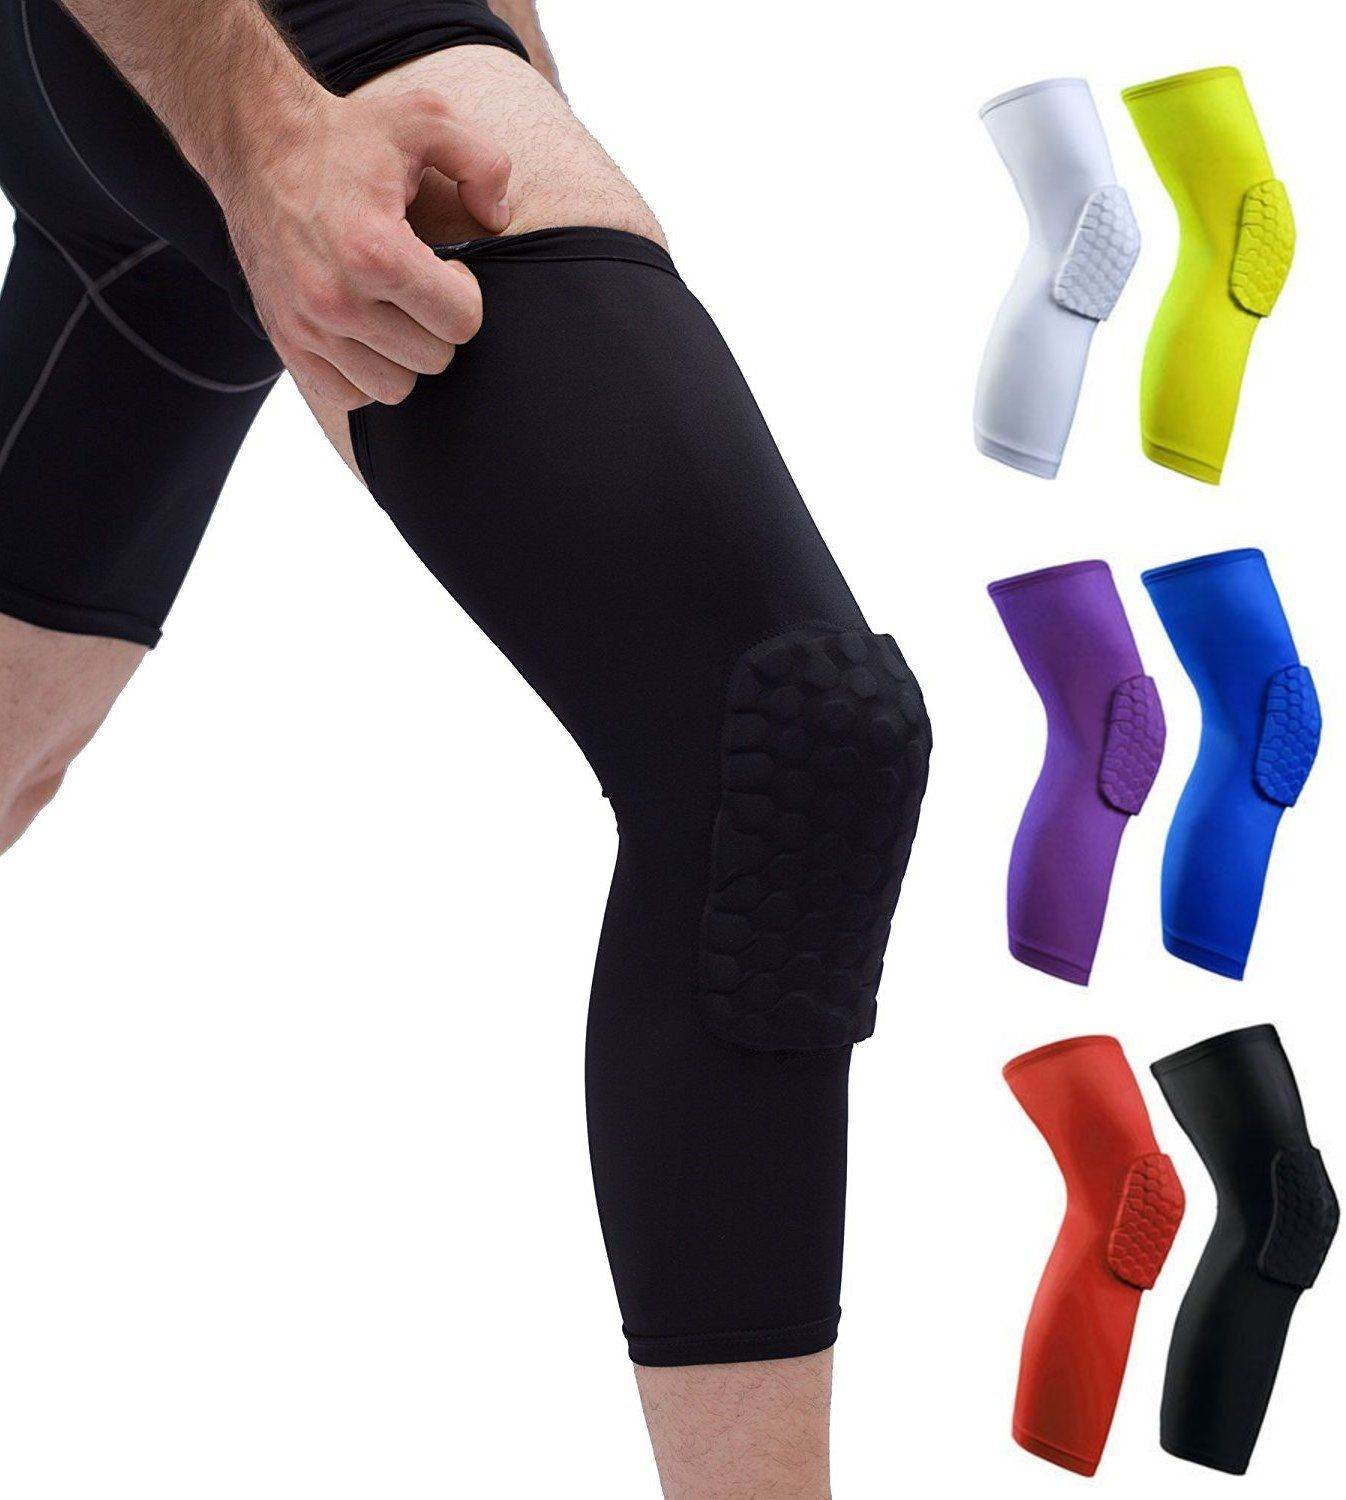 Compression Knee Sleeve Padded Leg Support HoneyComb Pad